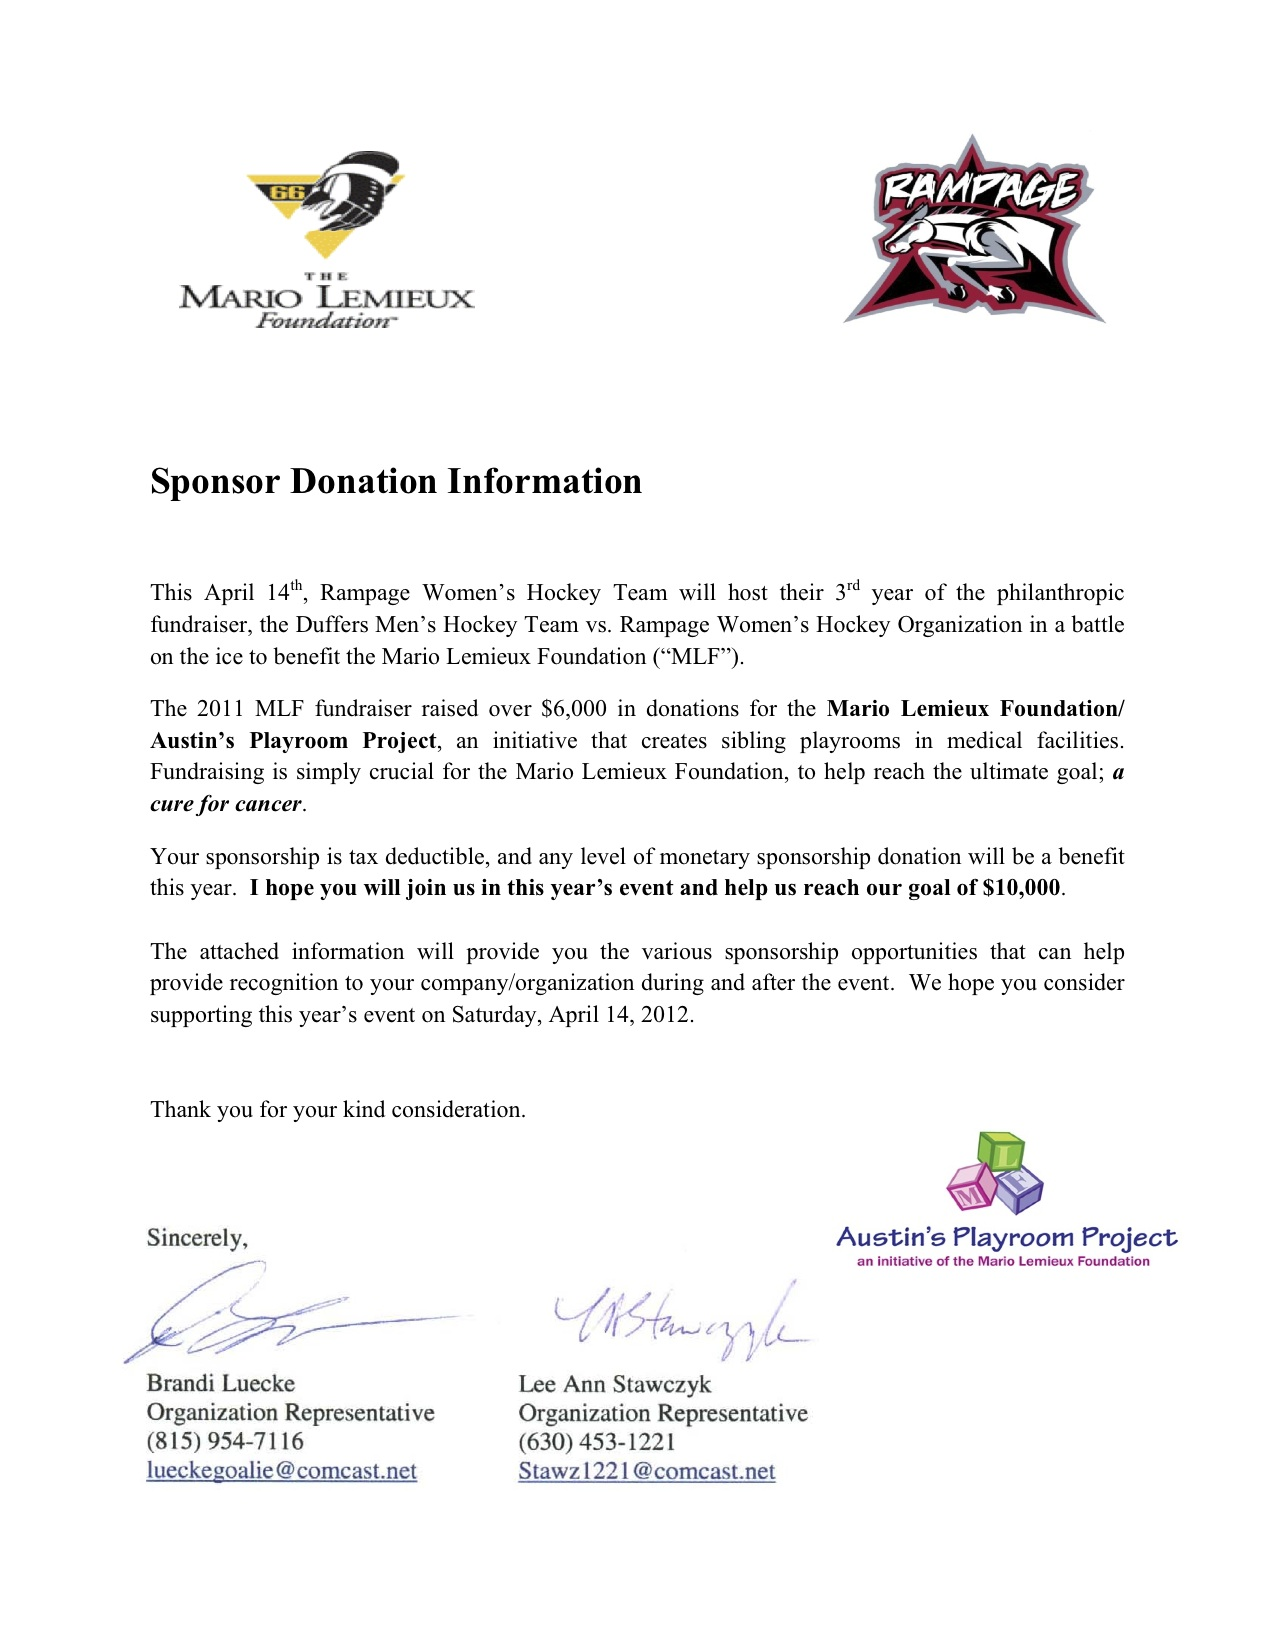 Ice Hockey Template Event Sponsorship Letter -